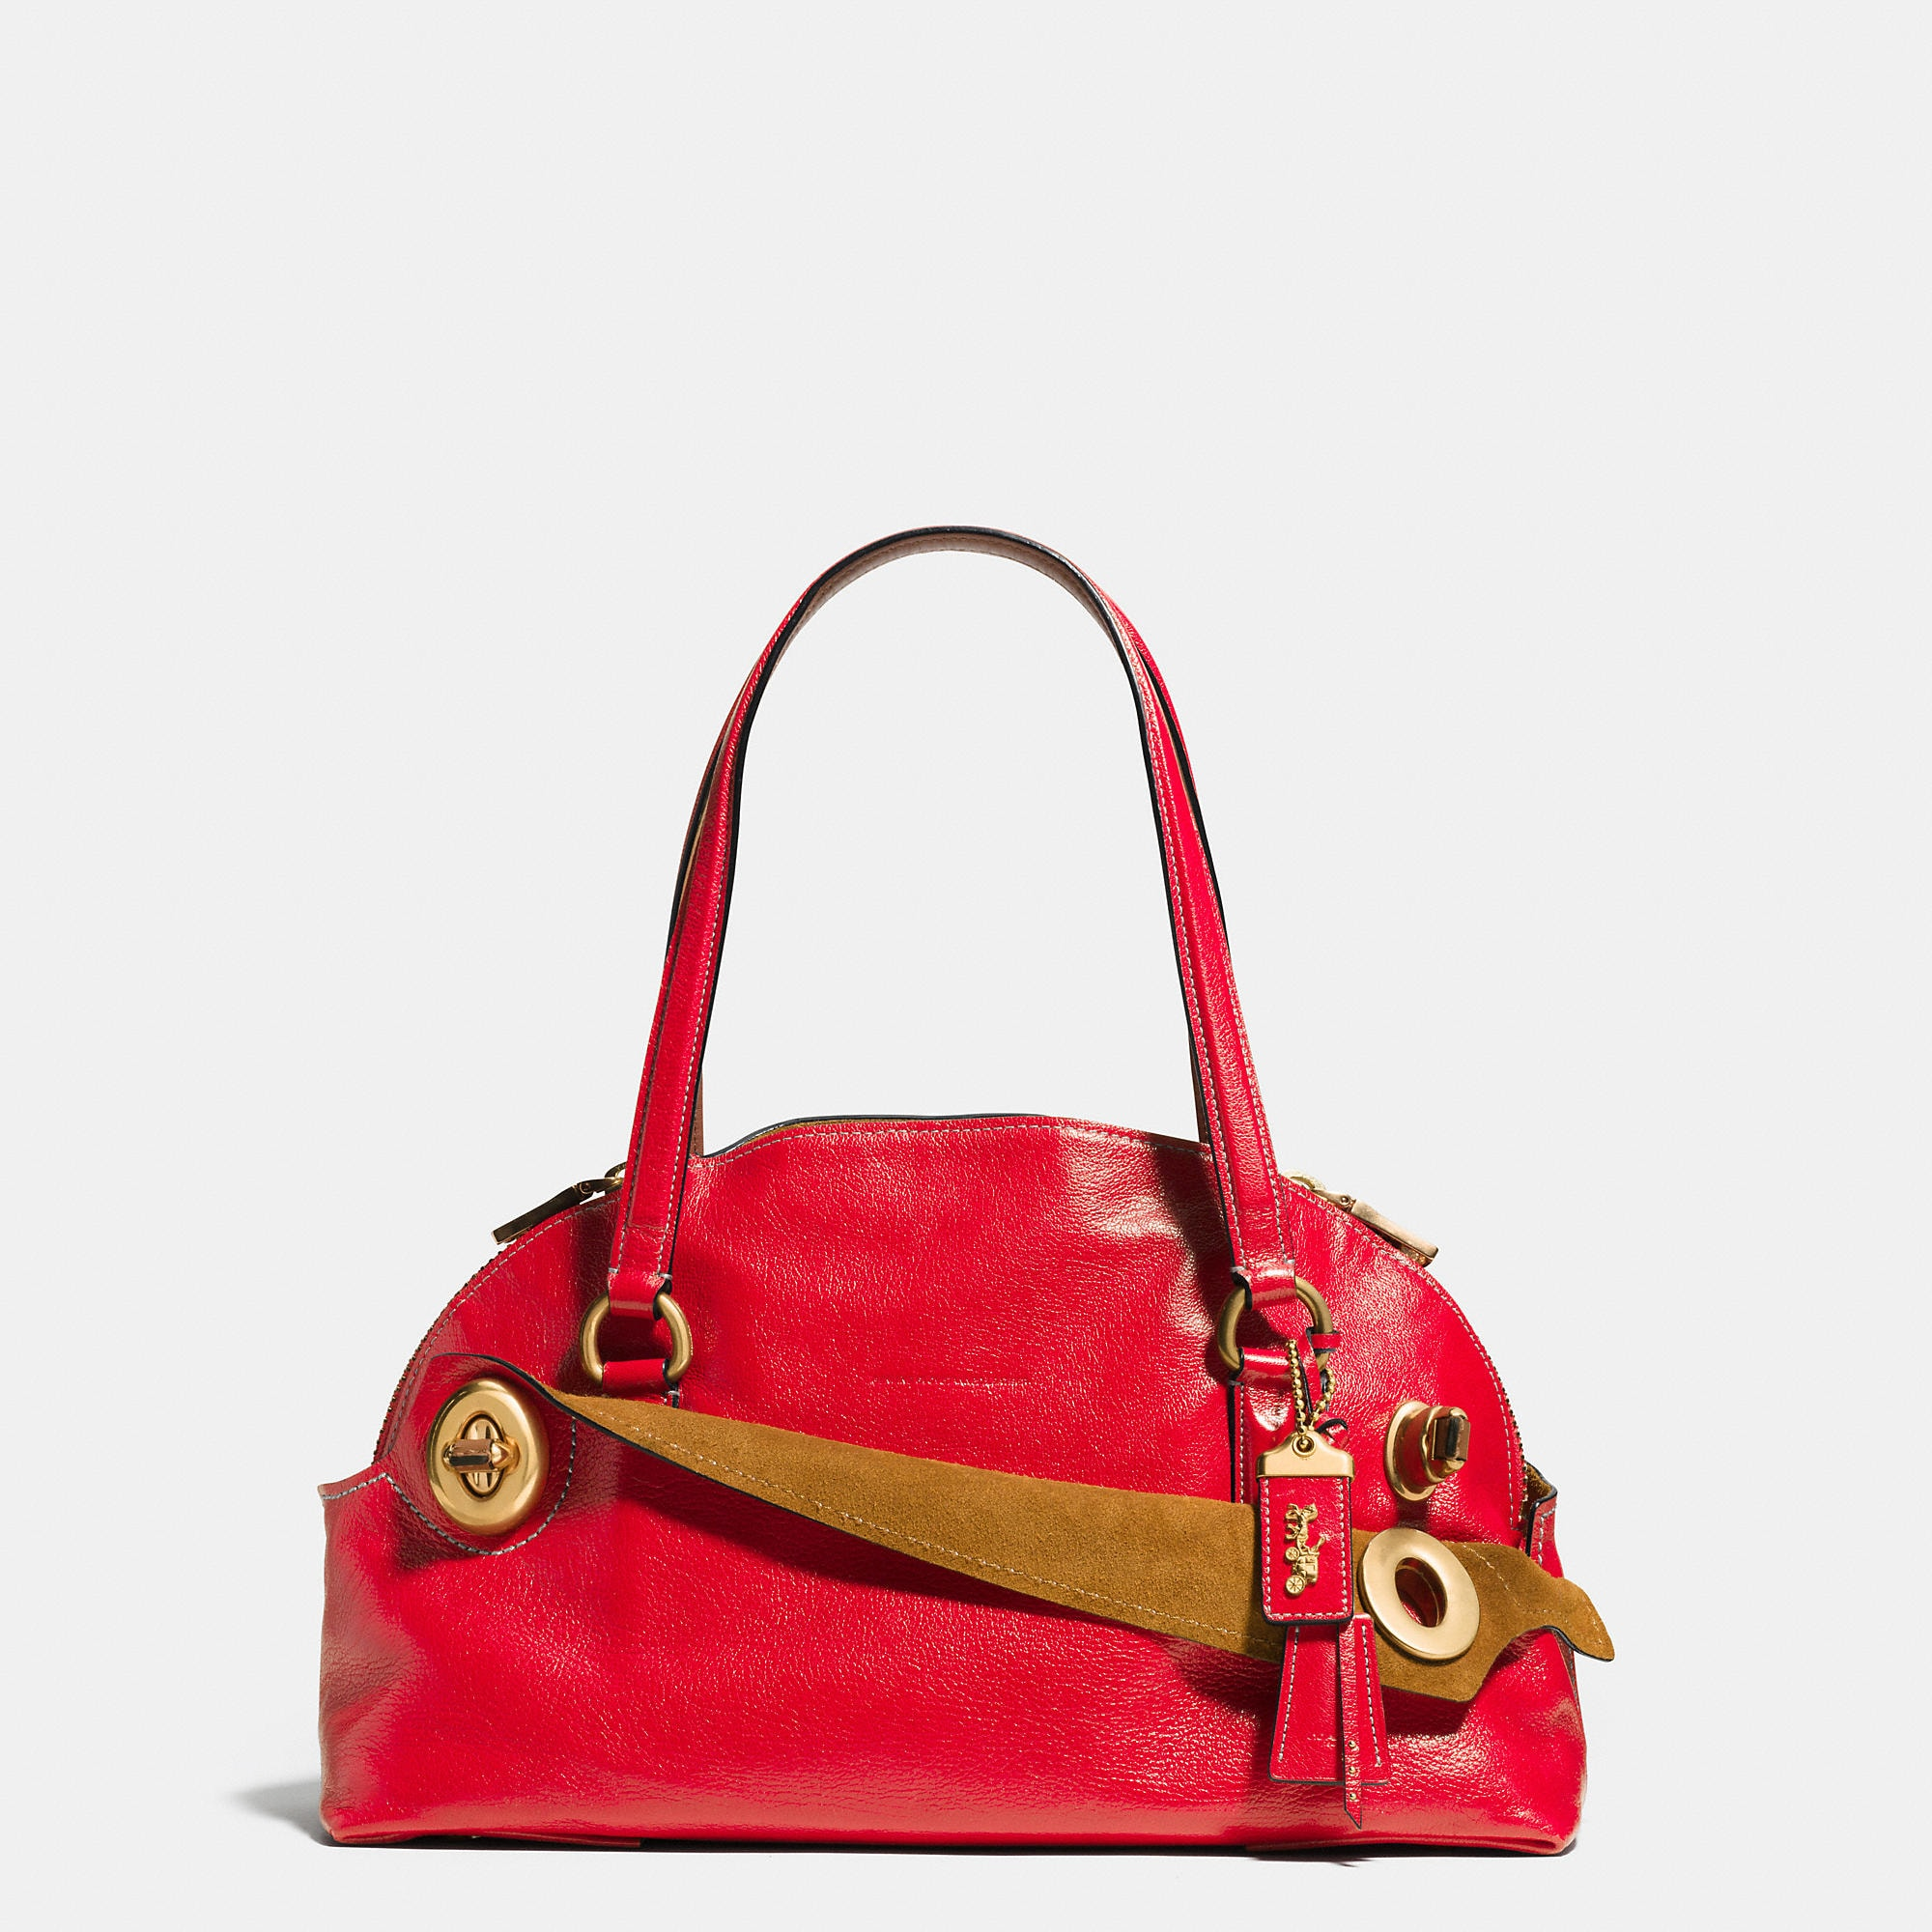 Coach 1941 Outlaw Satchel In Grain Leather